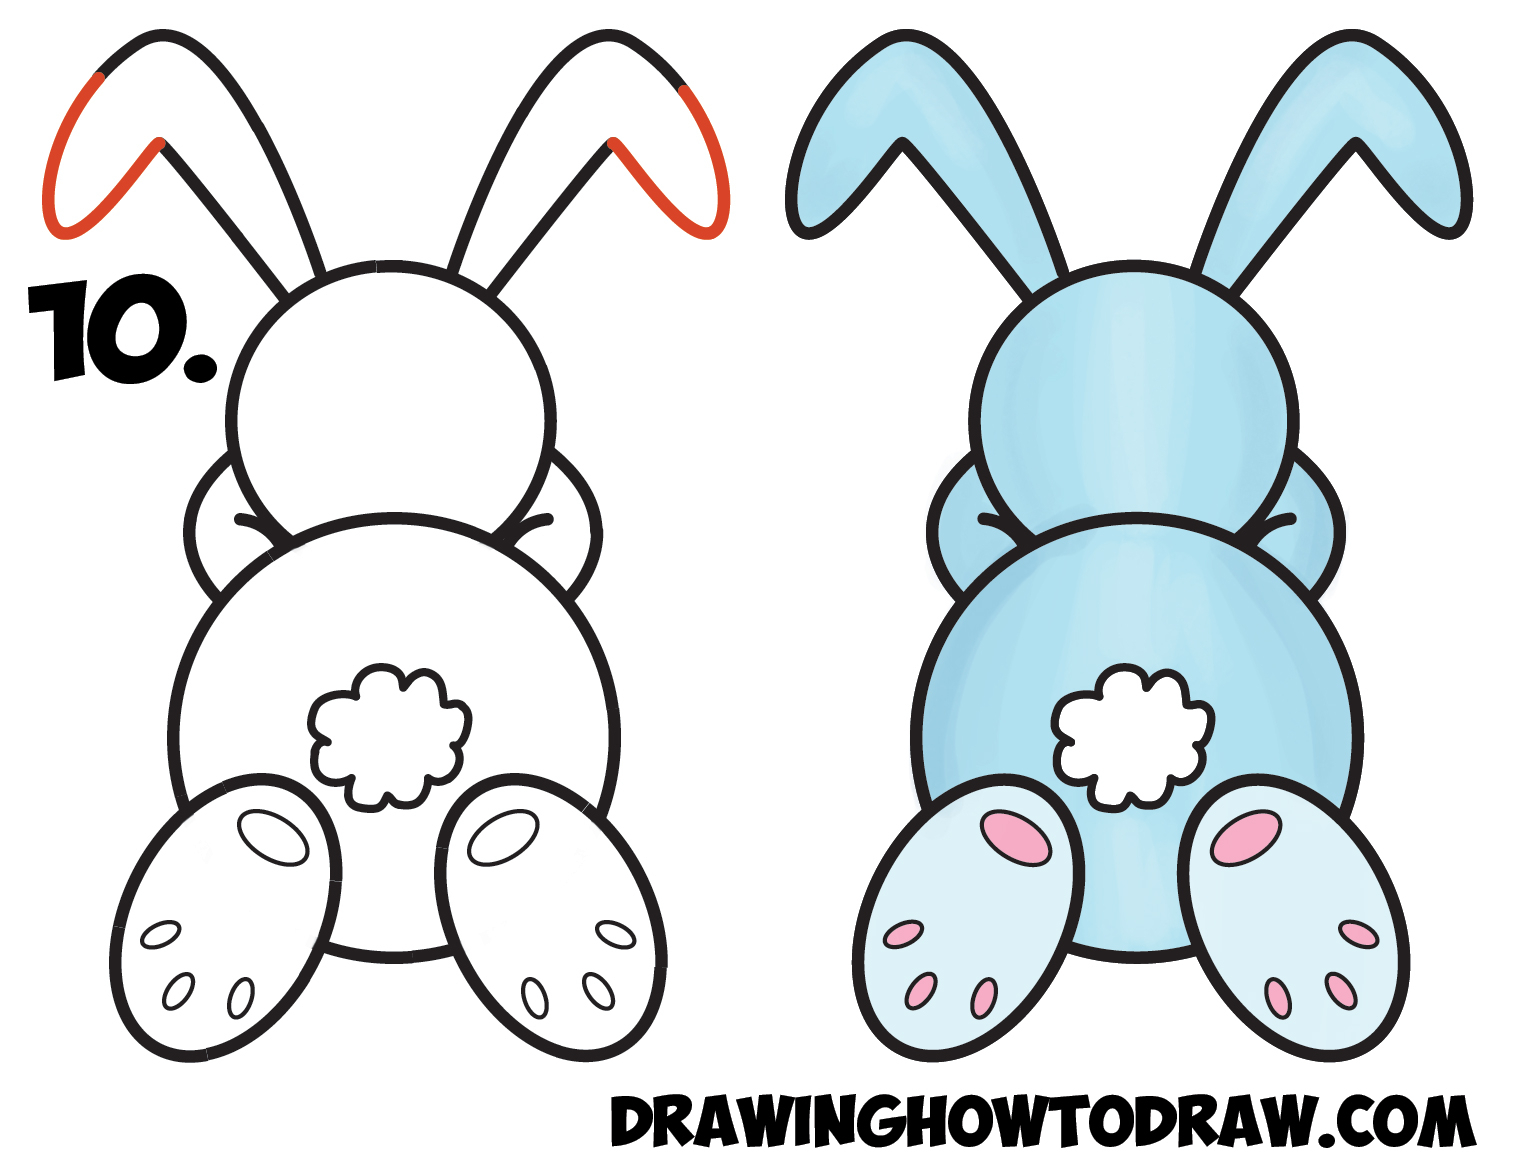 1513x1168 Cartoon Bunny Drawing How To Draw A Cute Cartoon Sleeping Bunny